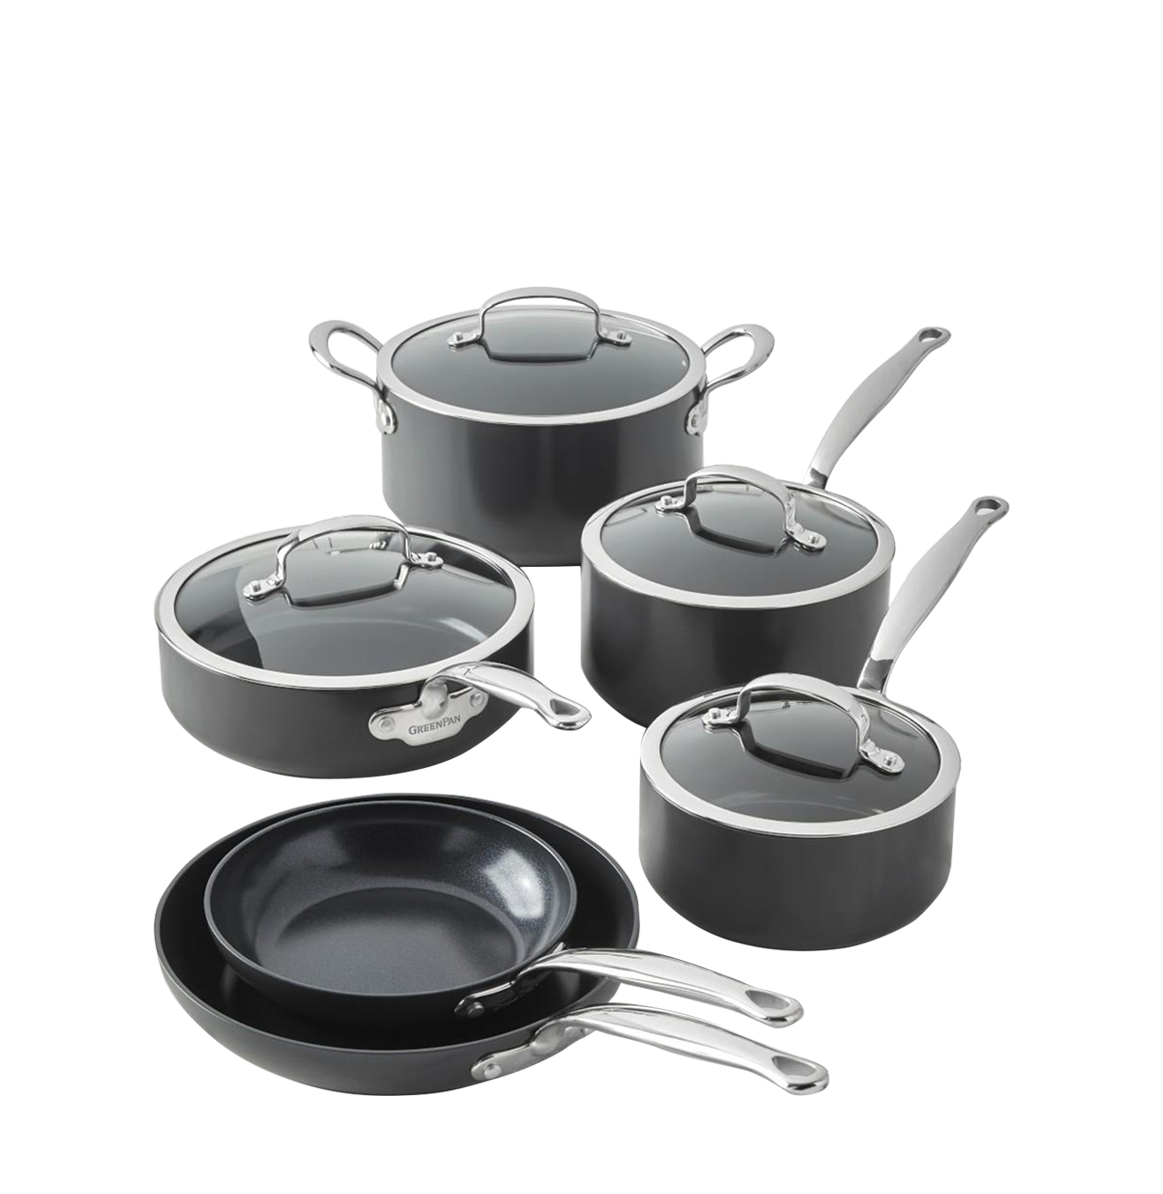 11 Best Ceramic Cookware Sets 2021 Top Tested Ceramic Pots And Pans